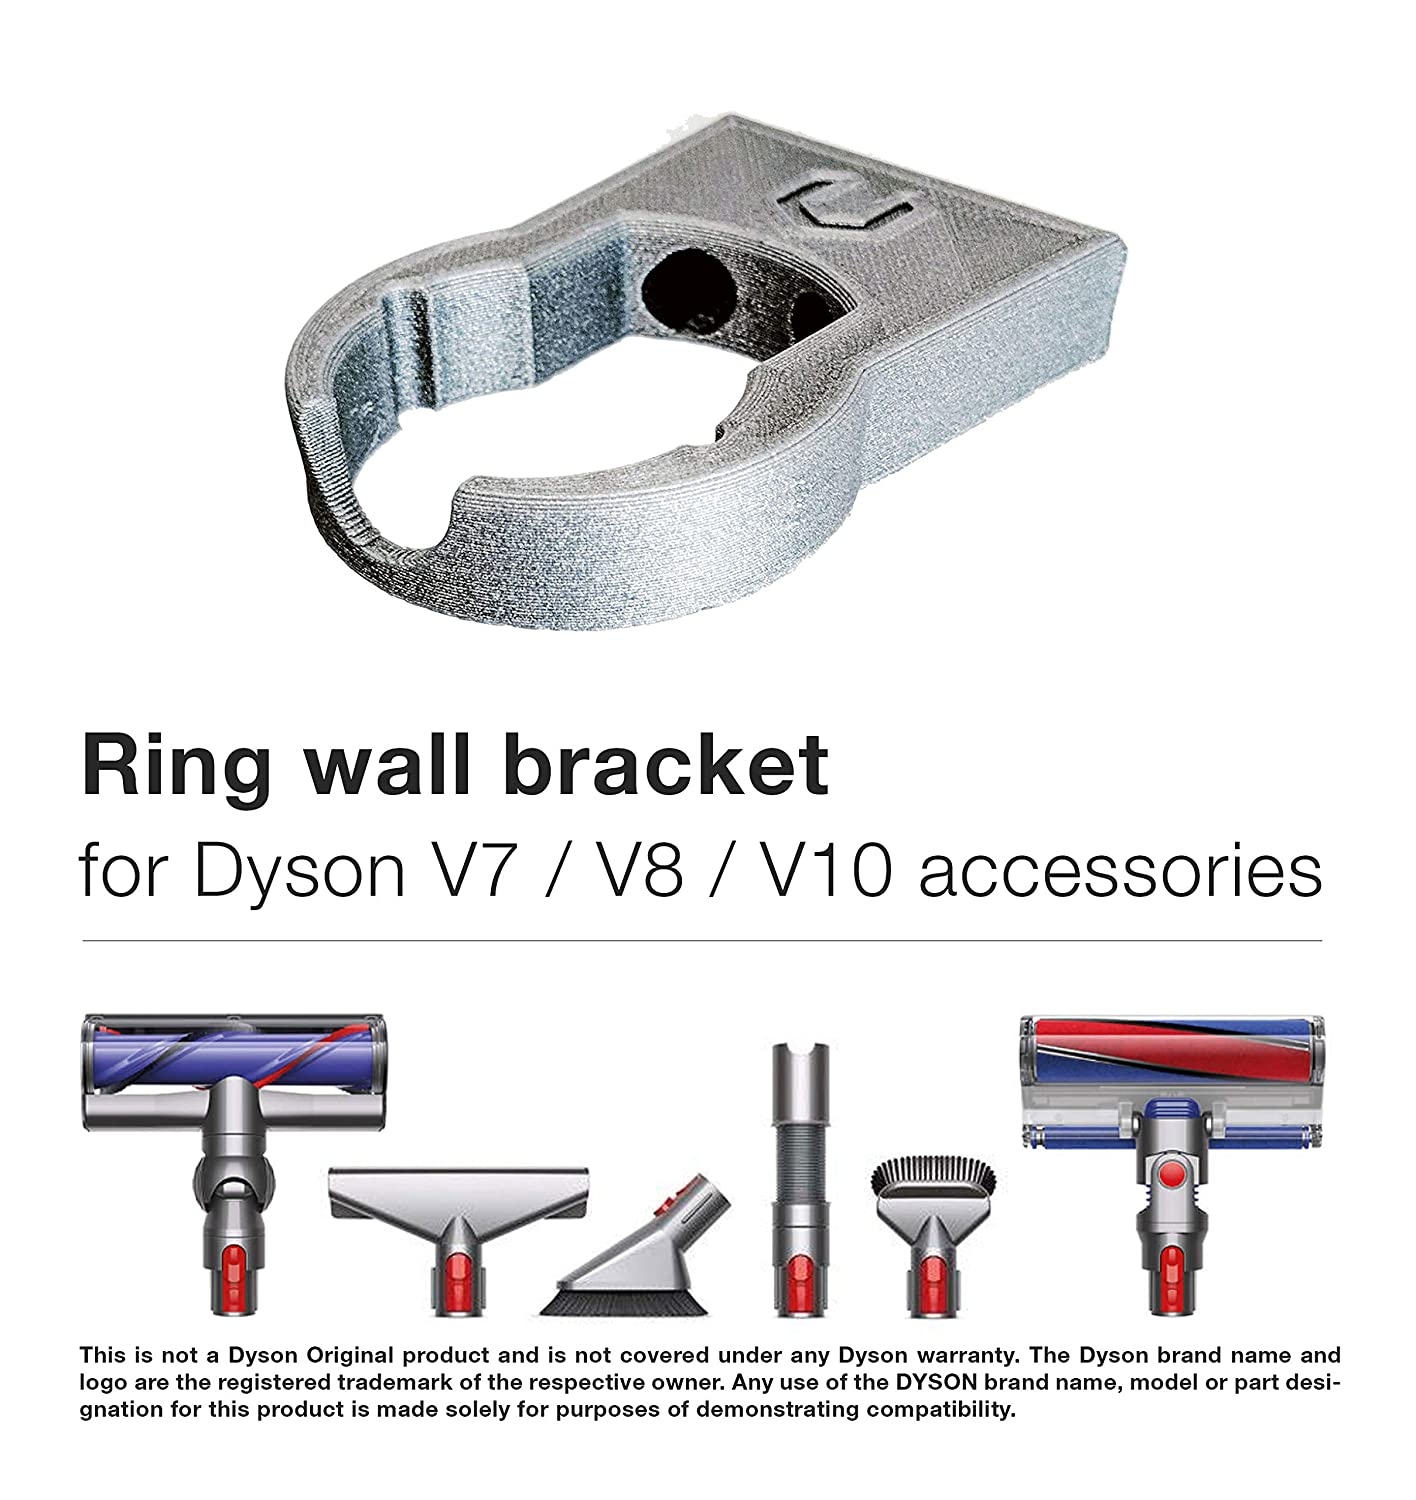 Amazon.com: Anillo soporte de pared para Dyson V7, V8, V10 ...